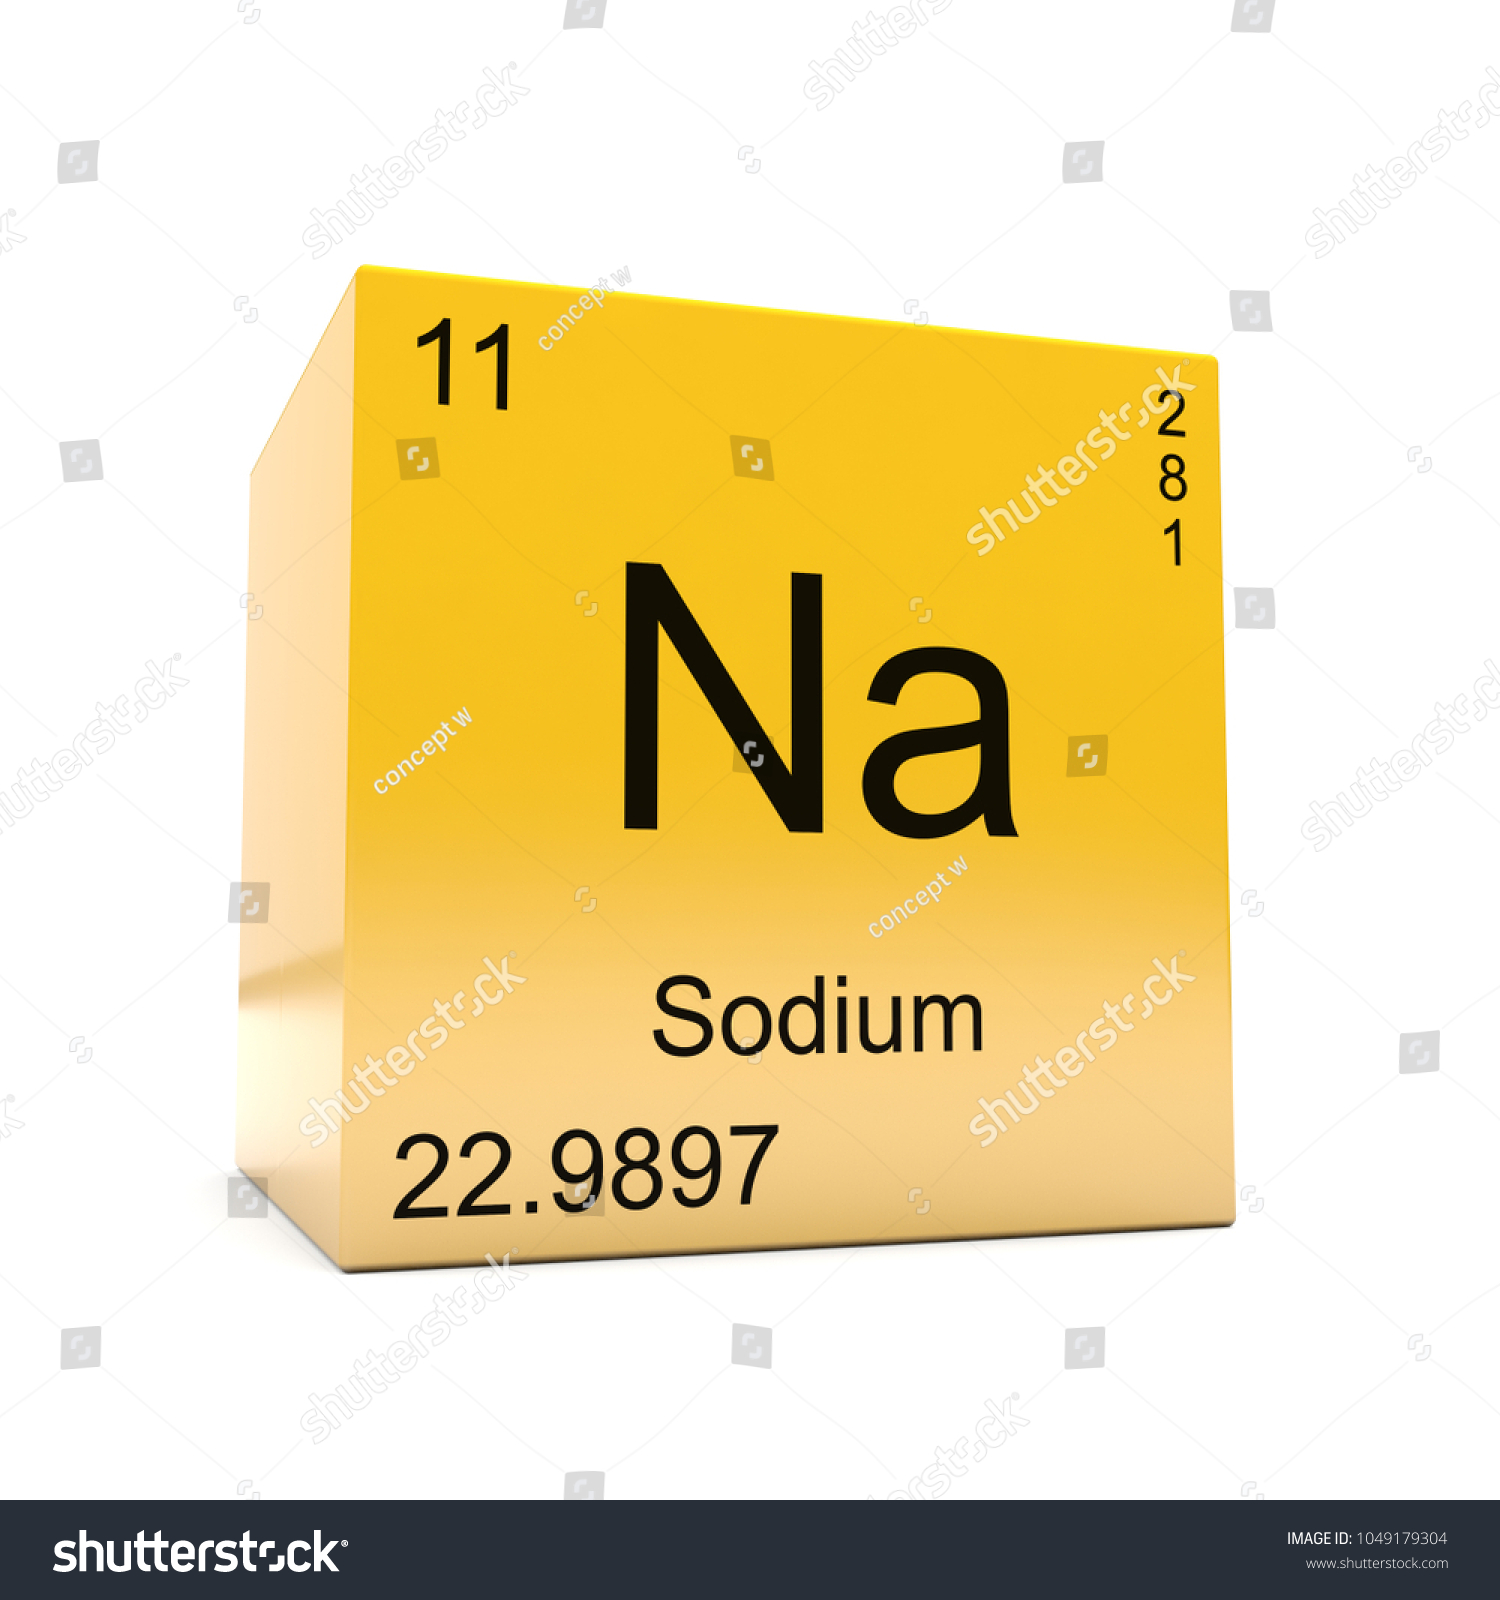 Sodium chemical element symbol periodic table stock illustration sodium chemical element symbol from the periodic table displayed on glossy yellow cube 3d render urtaz Choice Image